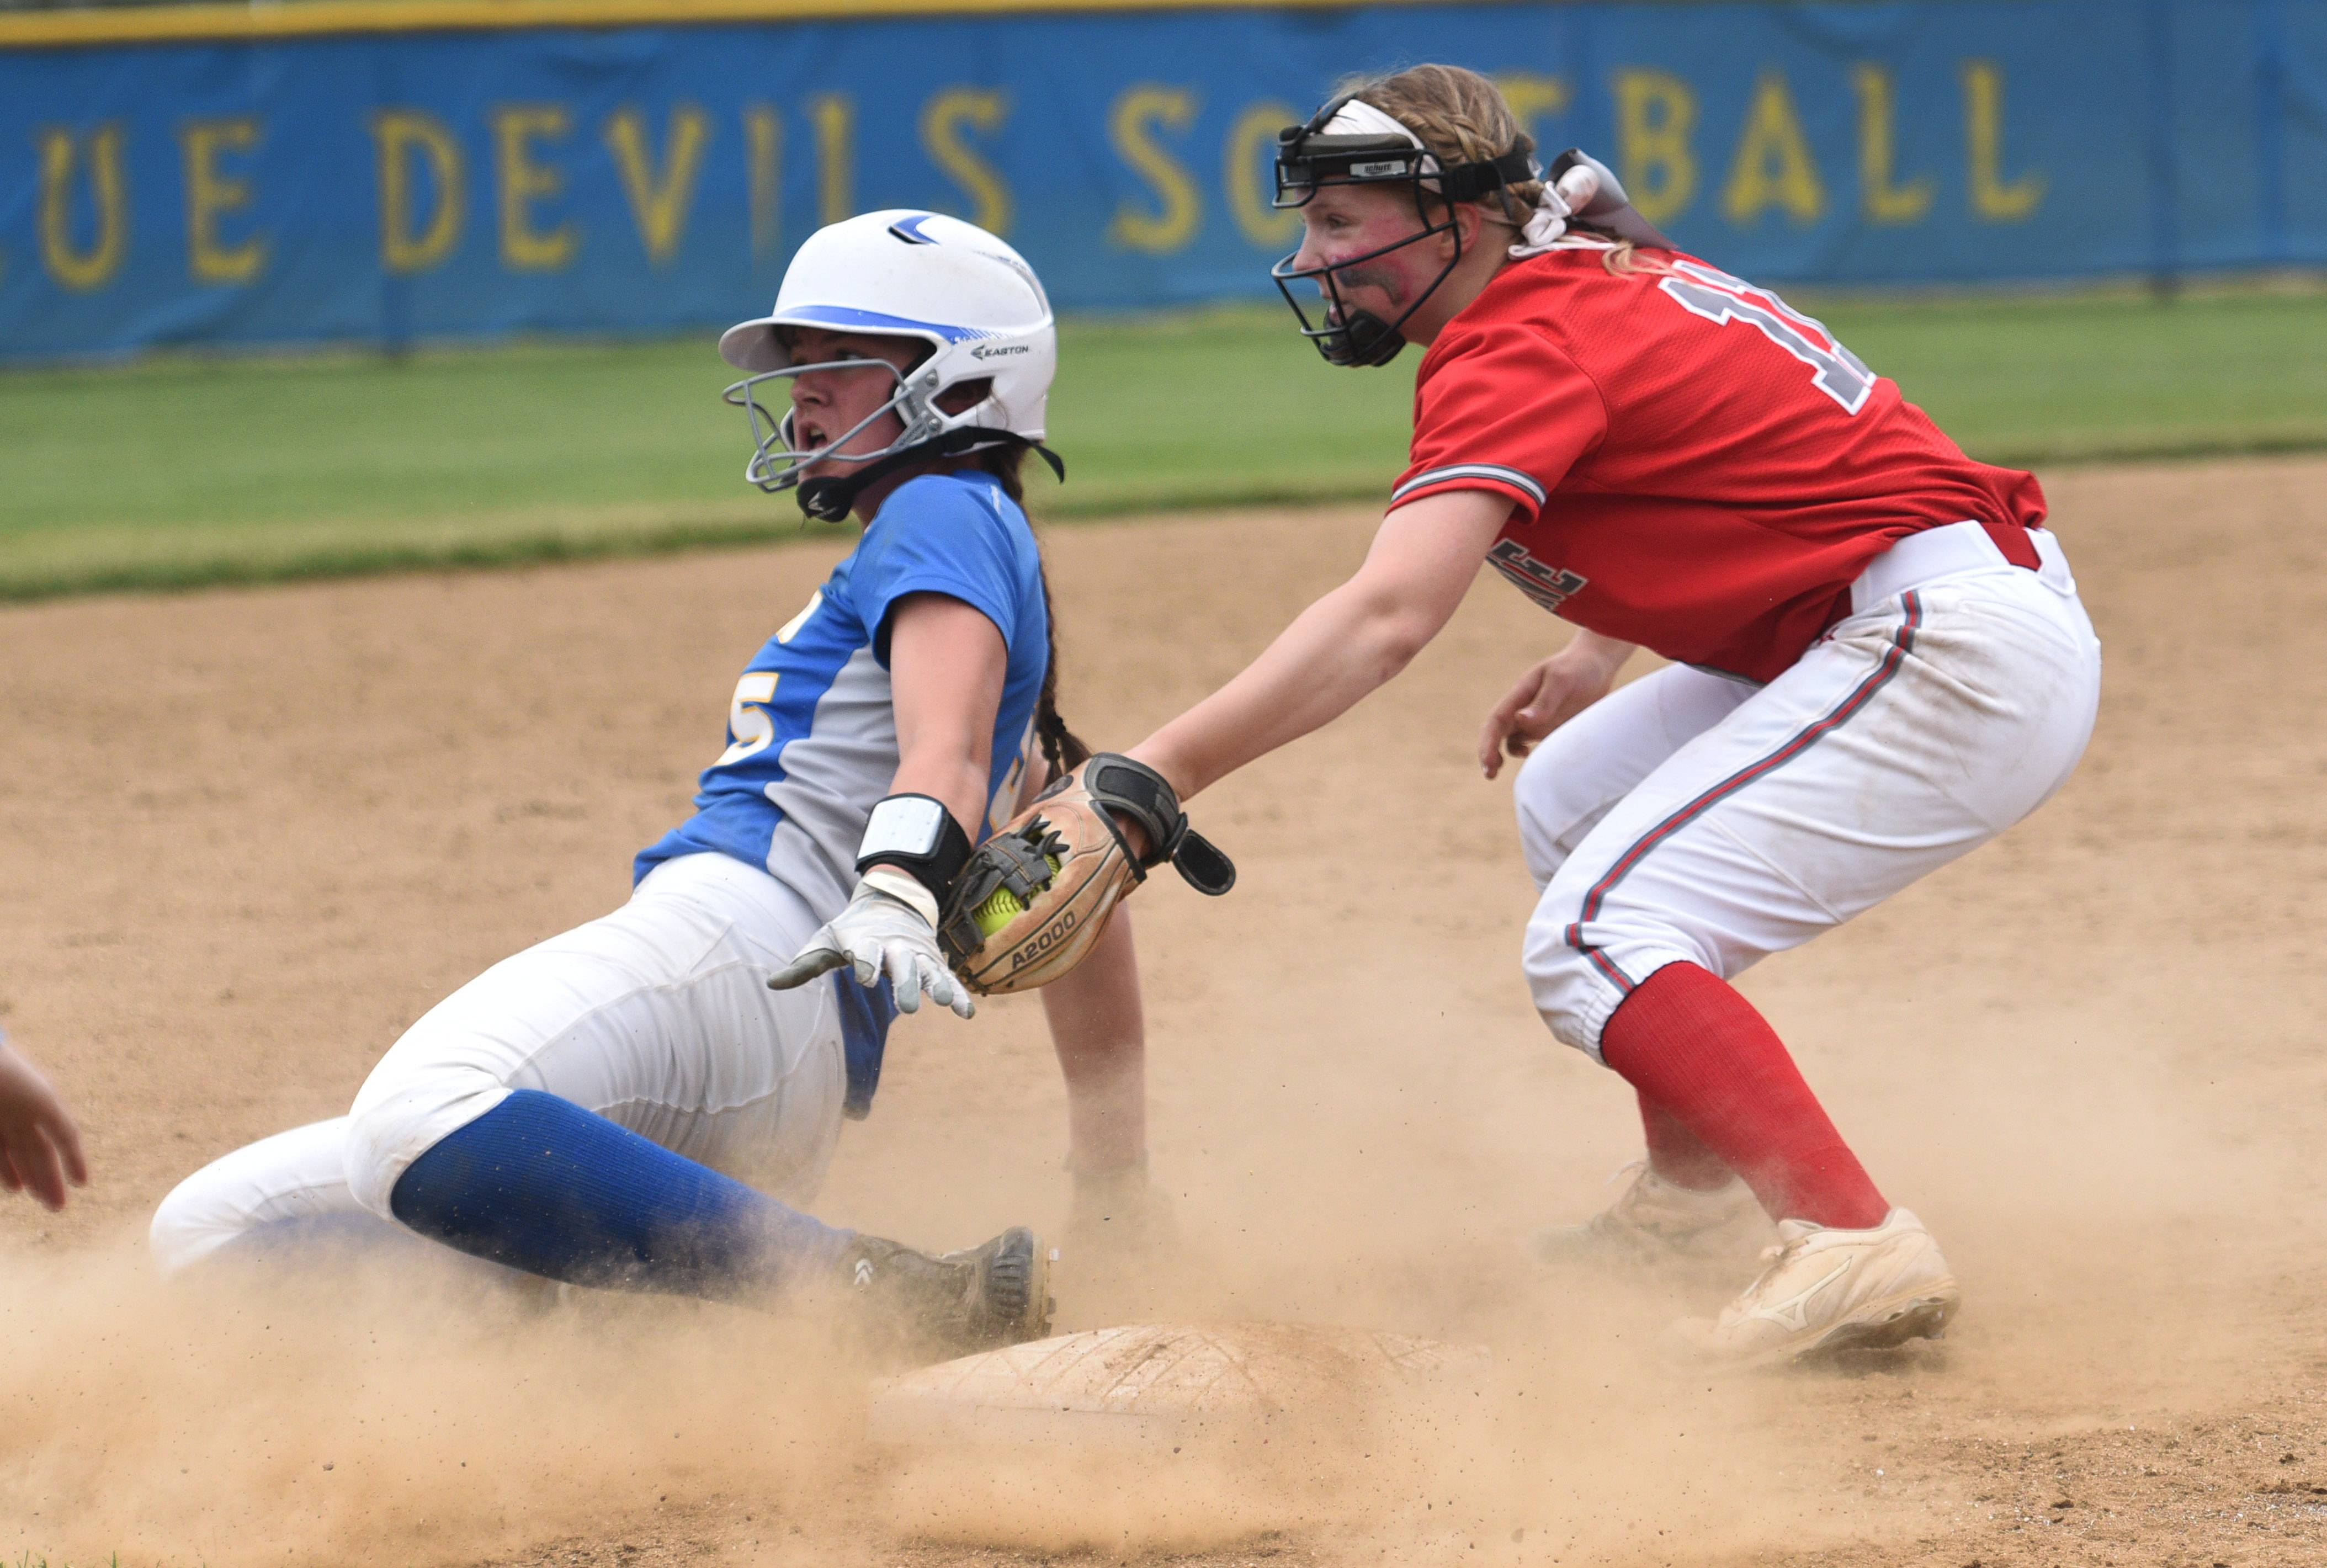 Palatine's Maddie Craver, right, applies the tag to Warren's Allison Schiltz during Saturday's Class 4A girls softball sectional championship in Gurnee. Schiltz was called out.